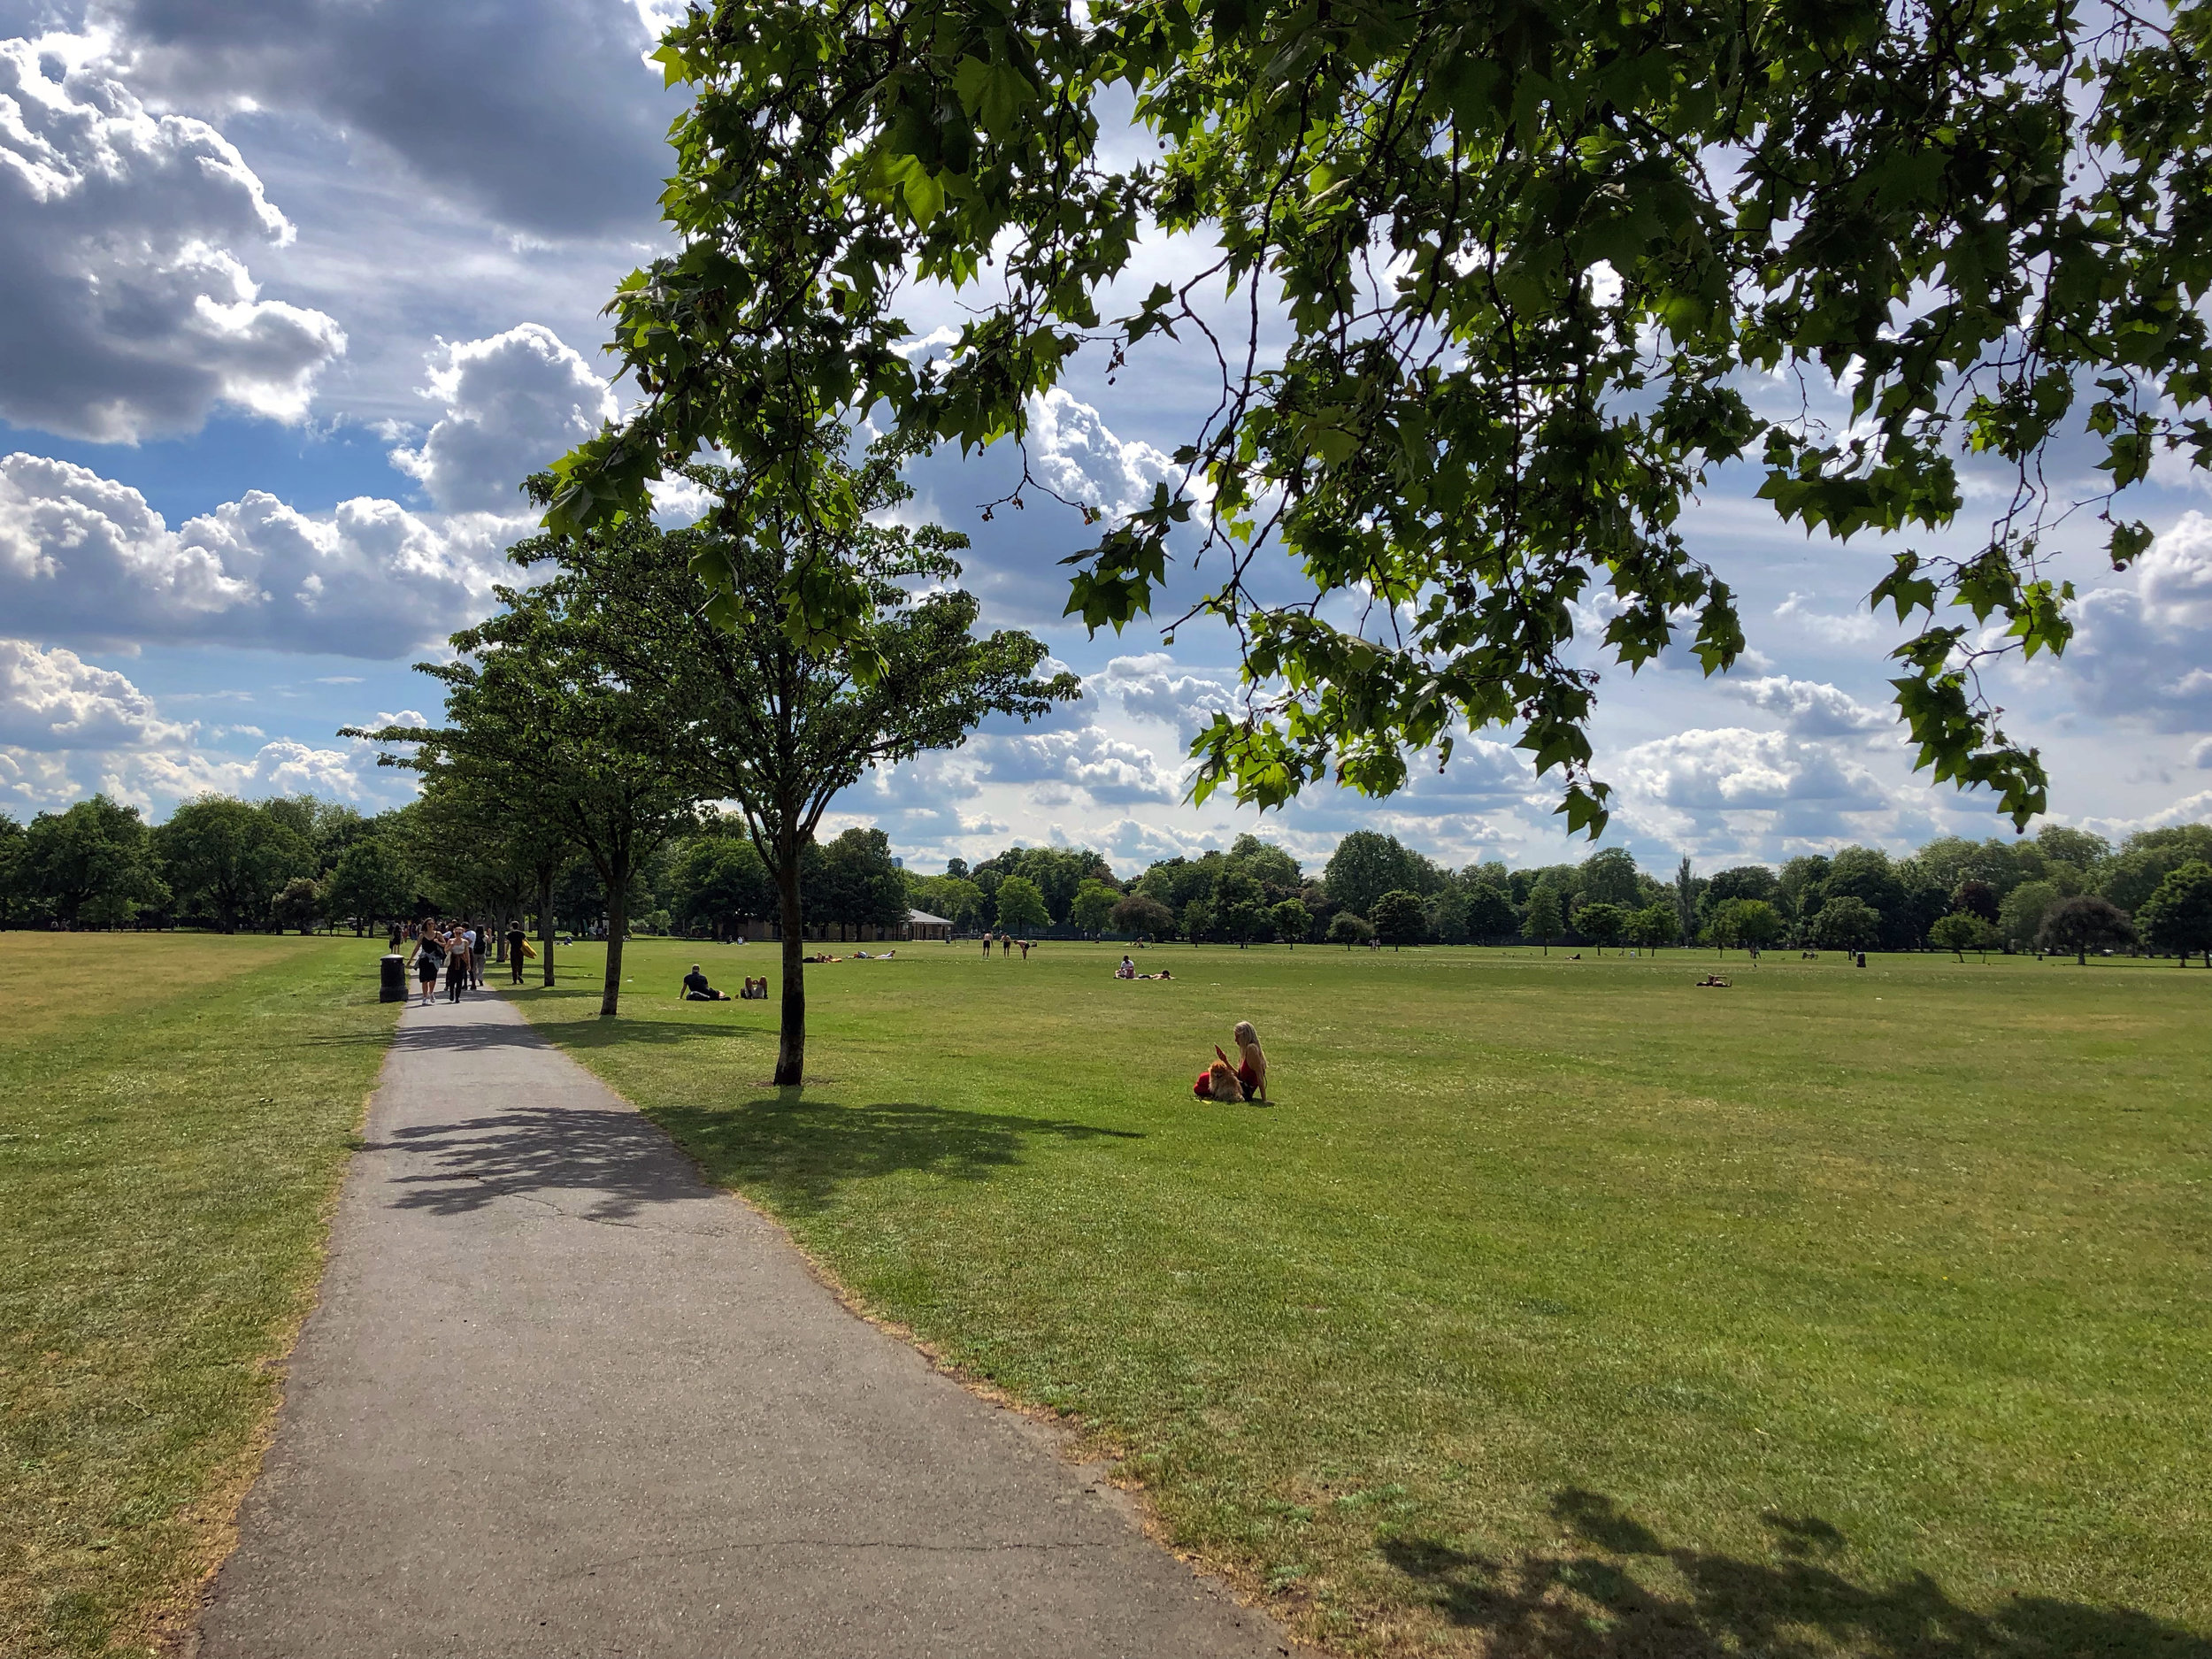 A quiet walk in the park. Victoria Park in London, UK - the site of All Points East music festival.